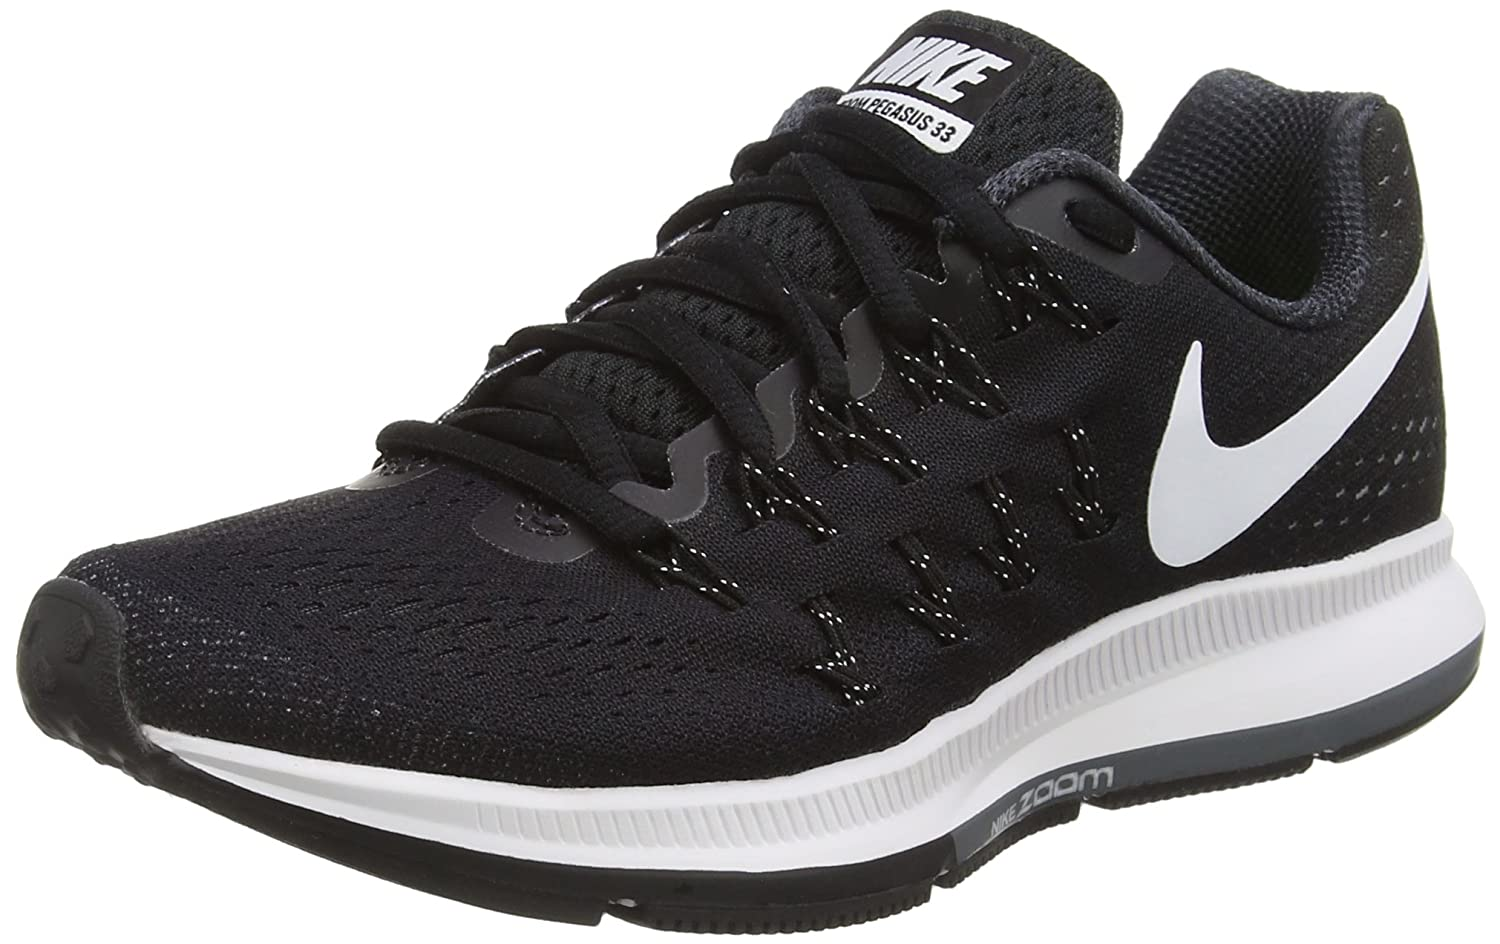 NIKE Women's Air Zoom Pegasus 33 B014EC7NLS 7.5 B(M) US|Black/Cool Grey/Wolf Grey/White